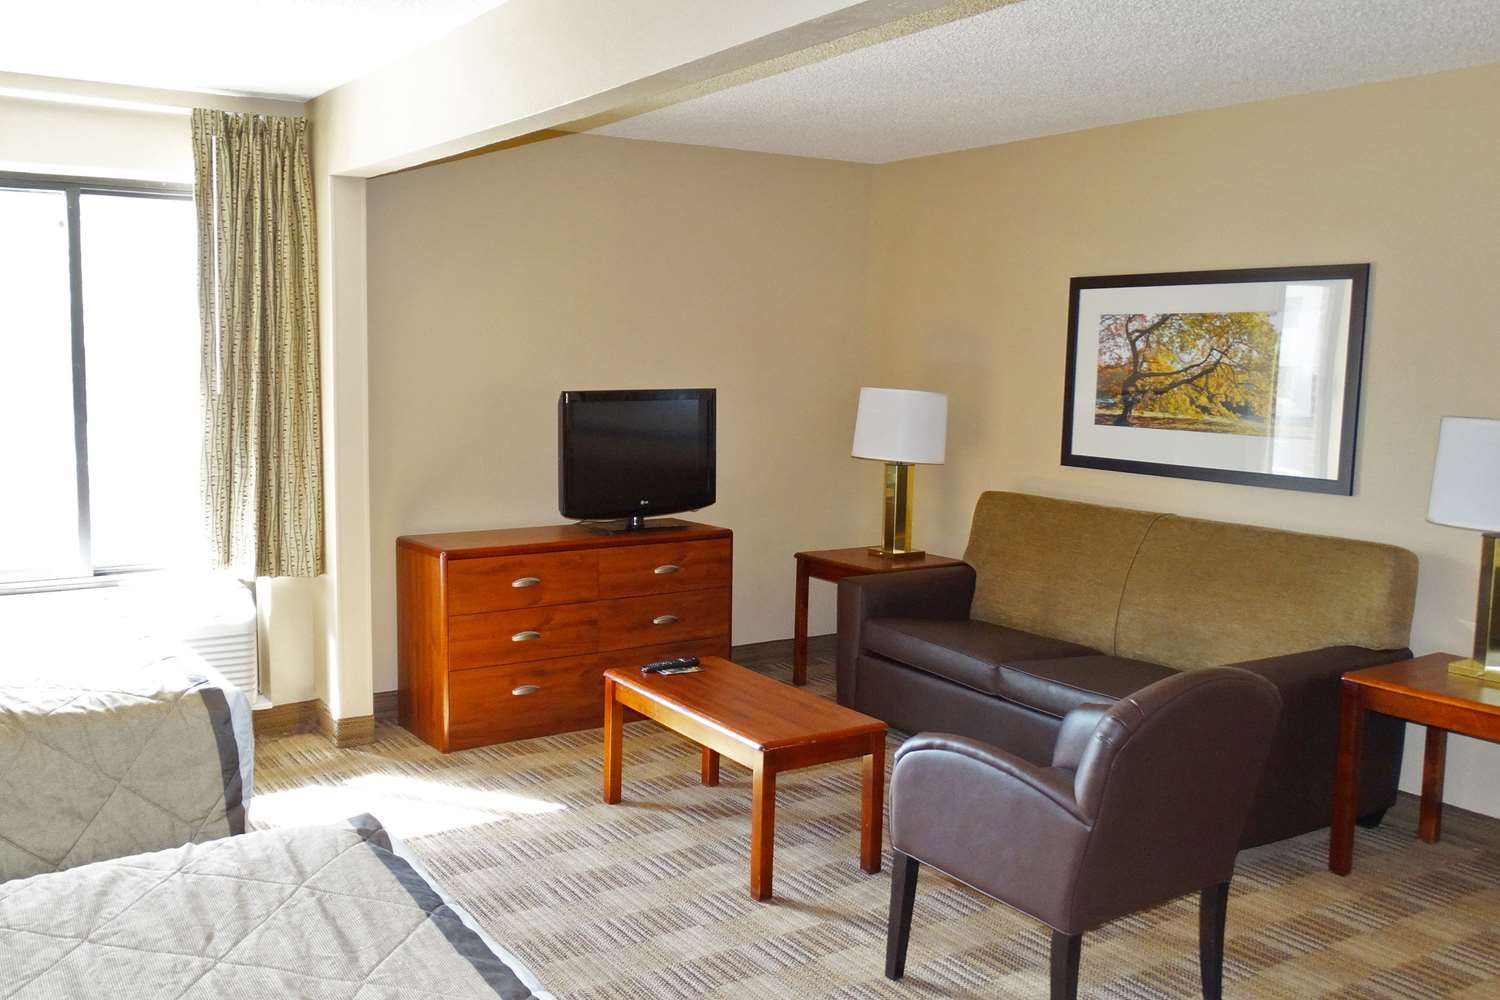 Extended Stay America Hotel East Evansville, IN - See Discounts